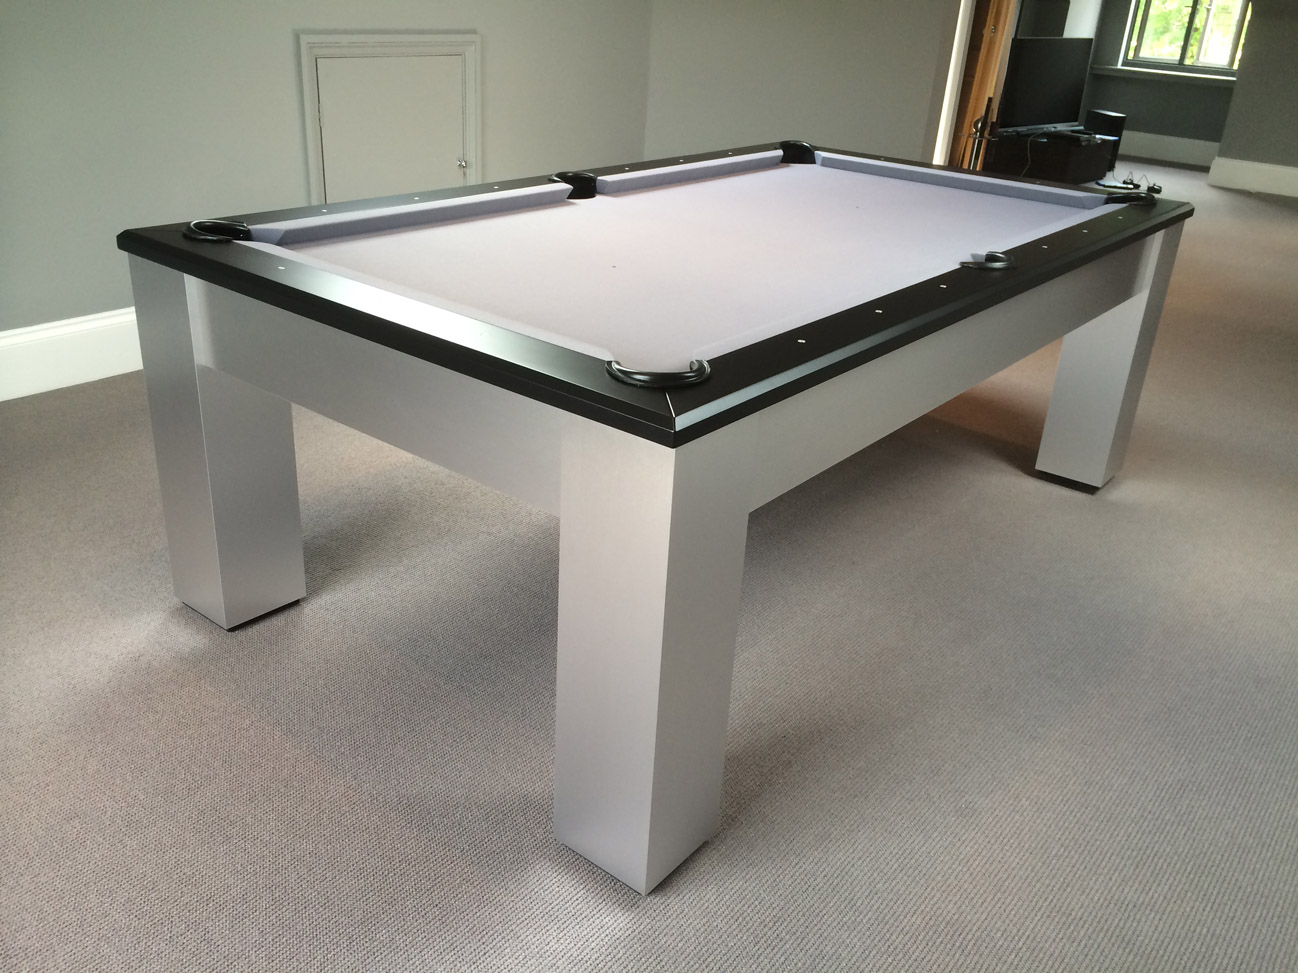 Olhausen madison modern bespoke american pool table - Billard table moderne ...